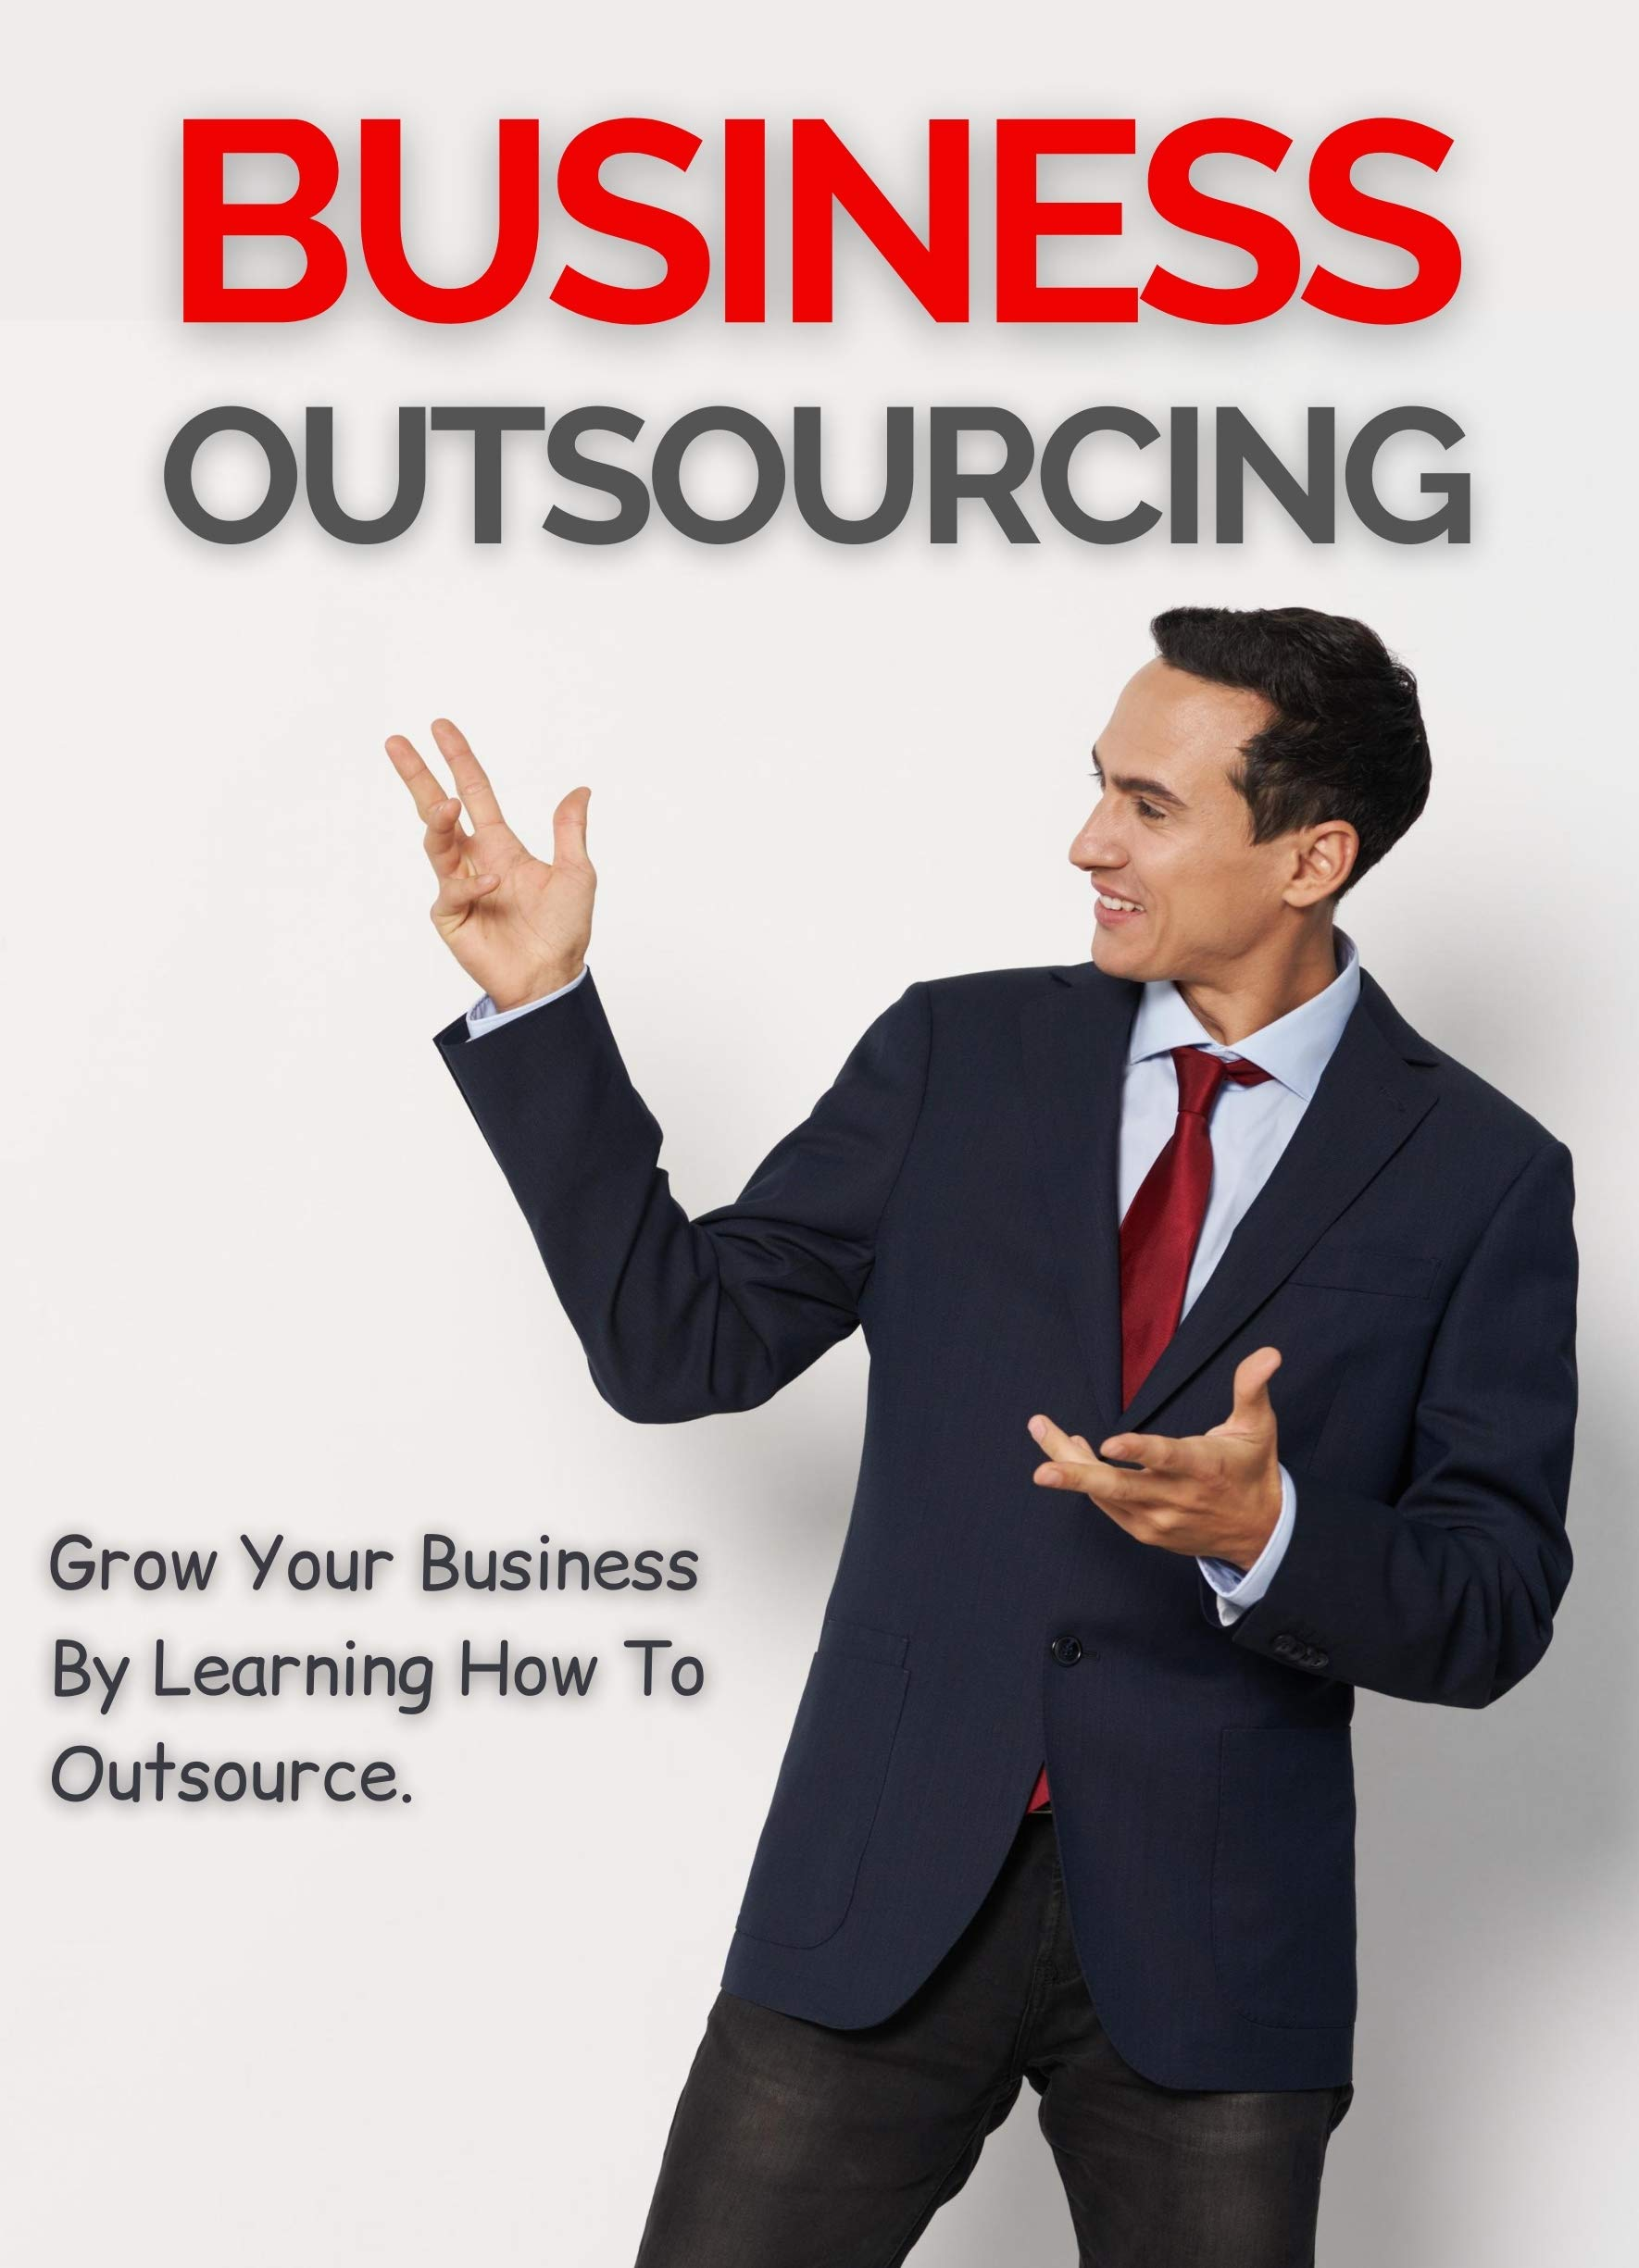 Business Outsourcing: Grow Your Business By Learning How To Outsource